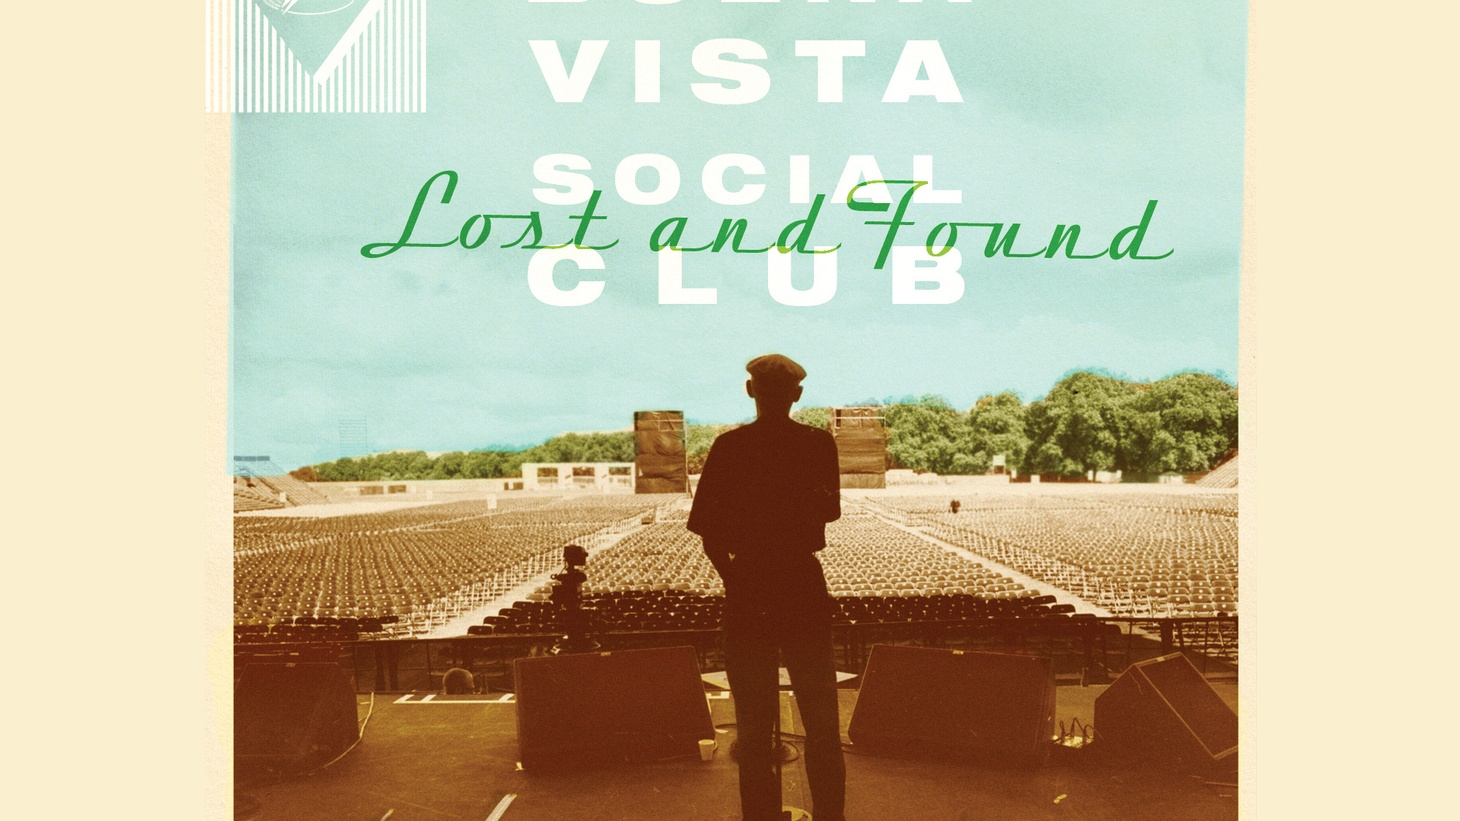 Two decades after the ground-breaking release of the original Buena Vista Social Club became a smash hit here at KCRW (not to mention at record stores, at the Grammys, and on concert stages everywhere), this collection features previously unreleased recordings from the original sessions and later gatherings as well.